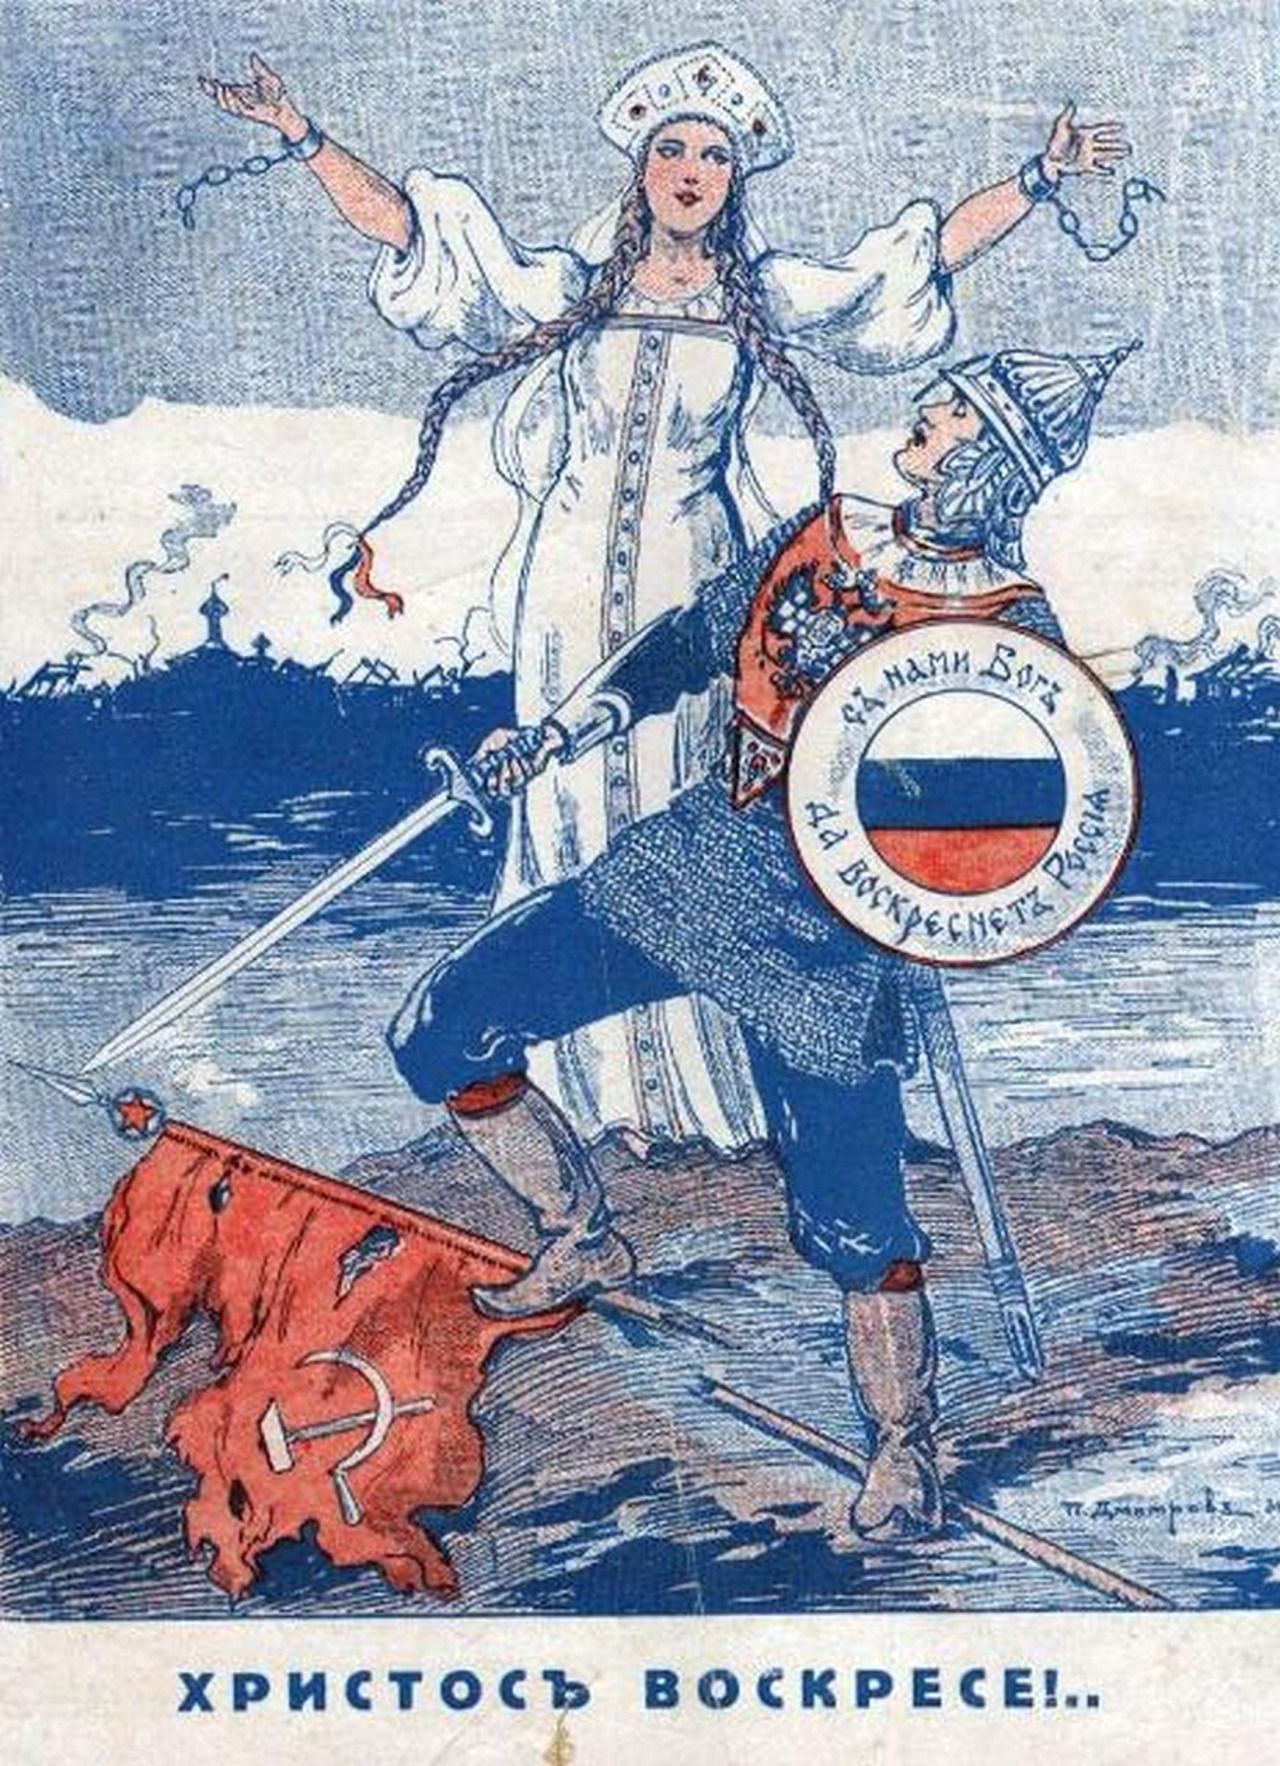 national personification of Russia